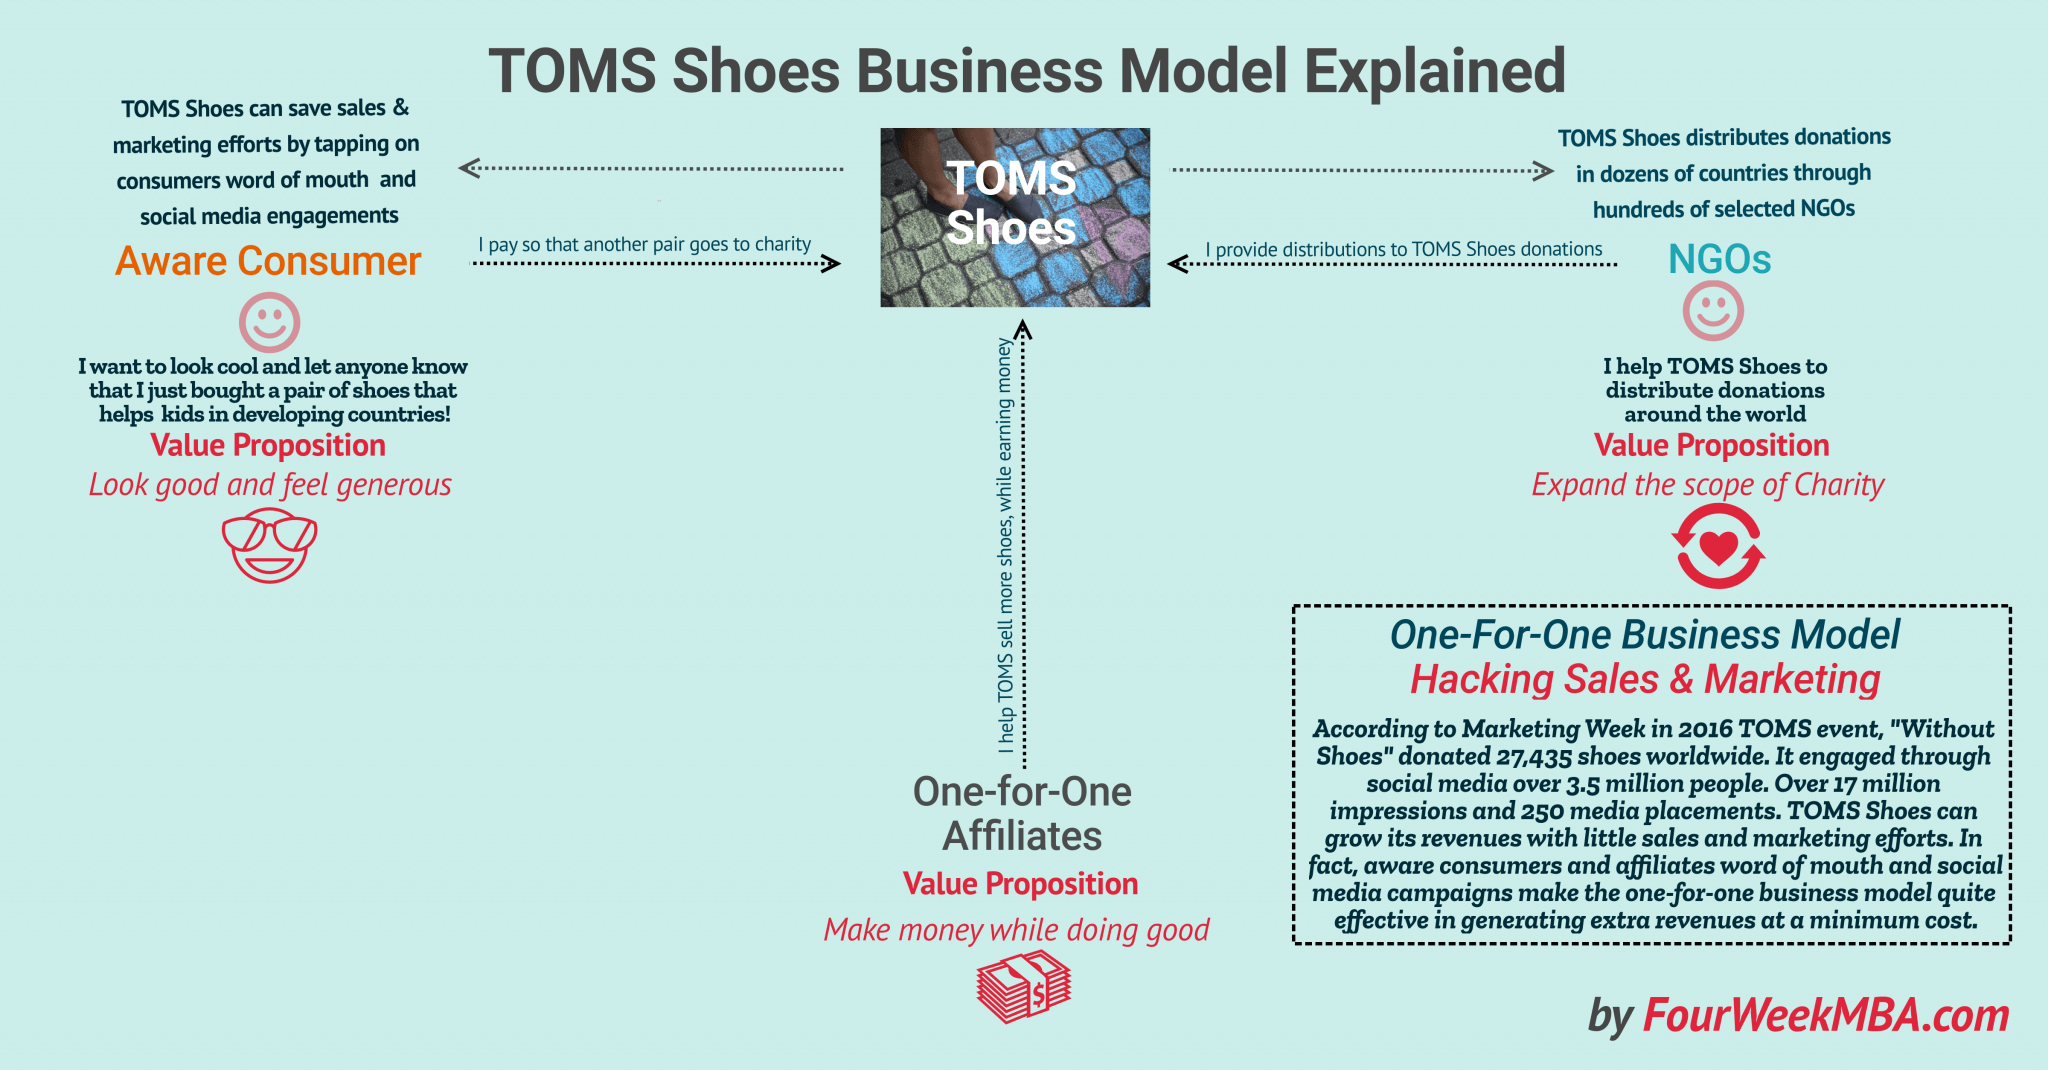 6cd8bf2a0da How Does TOMS Shoes Make Money  The One-For-One Business Model ...